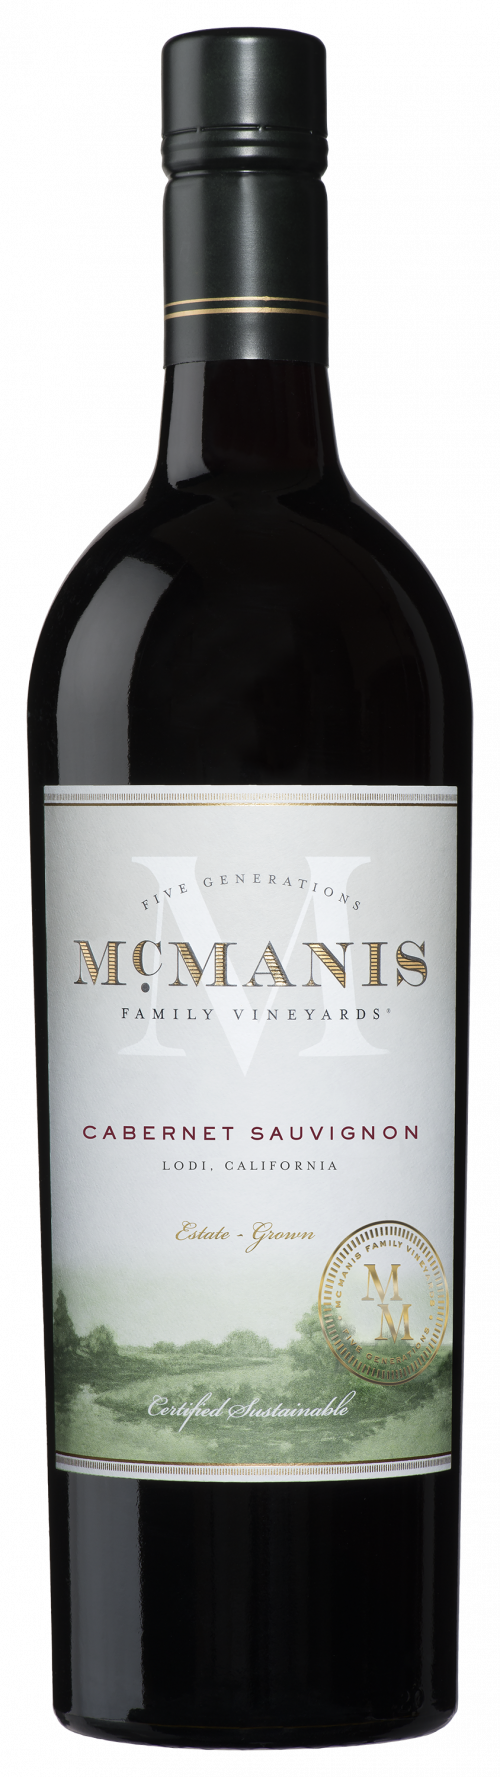 McManis Cabernet Sauvignon 750ml NV